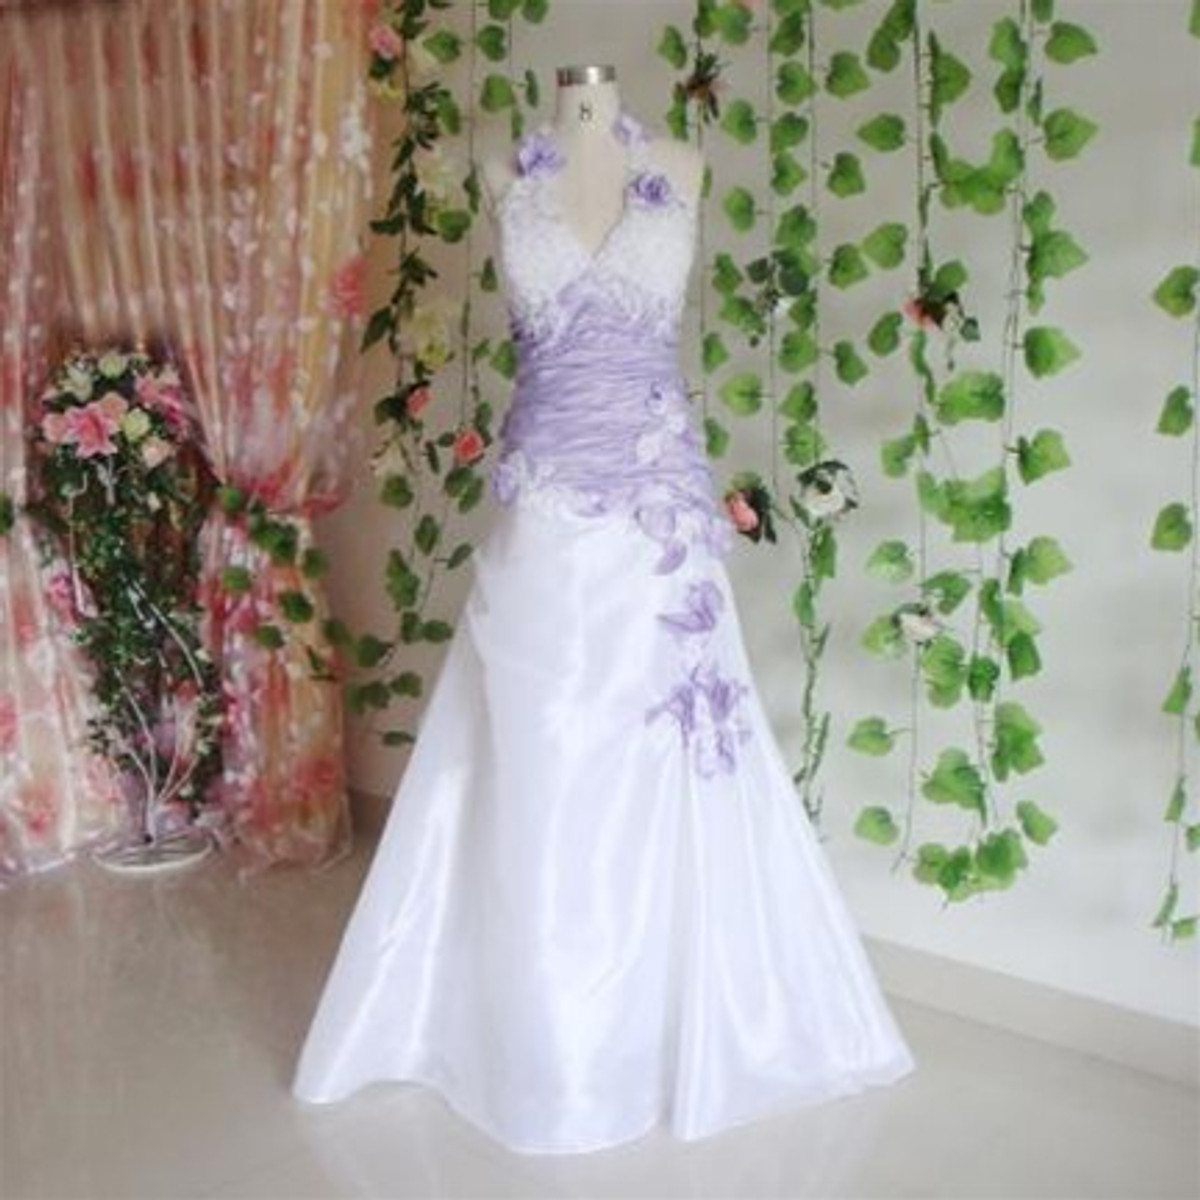 White and purple wedding dress images